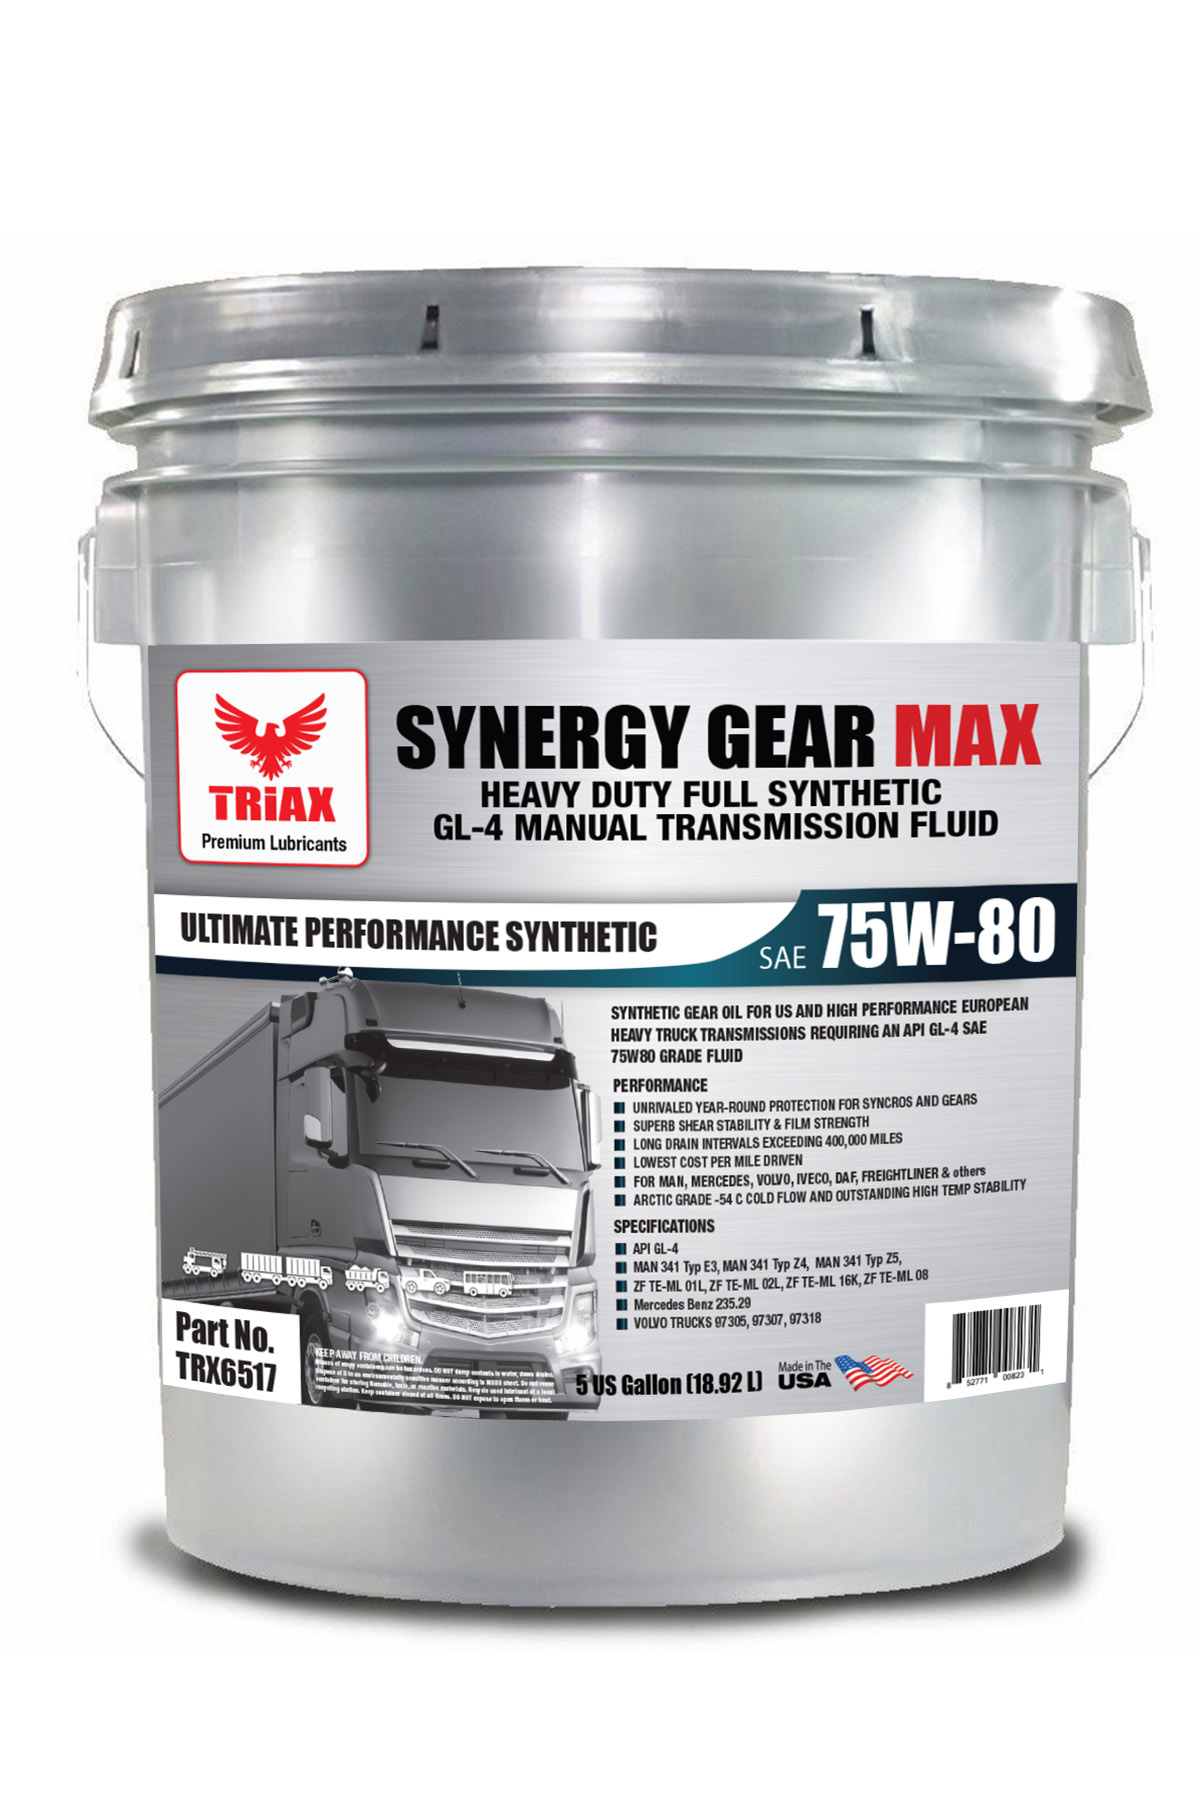 TRIAX Synergy Gear Max 75W-80 Full Sintetic